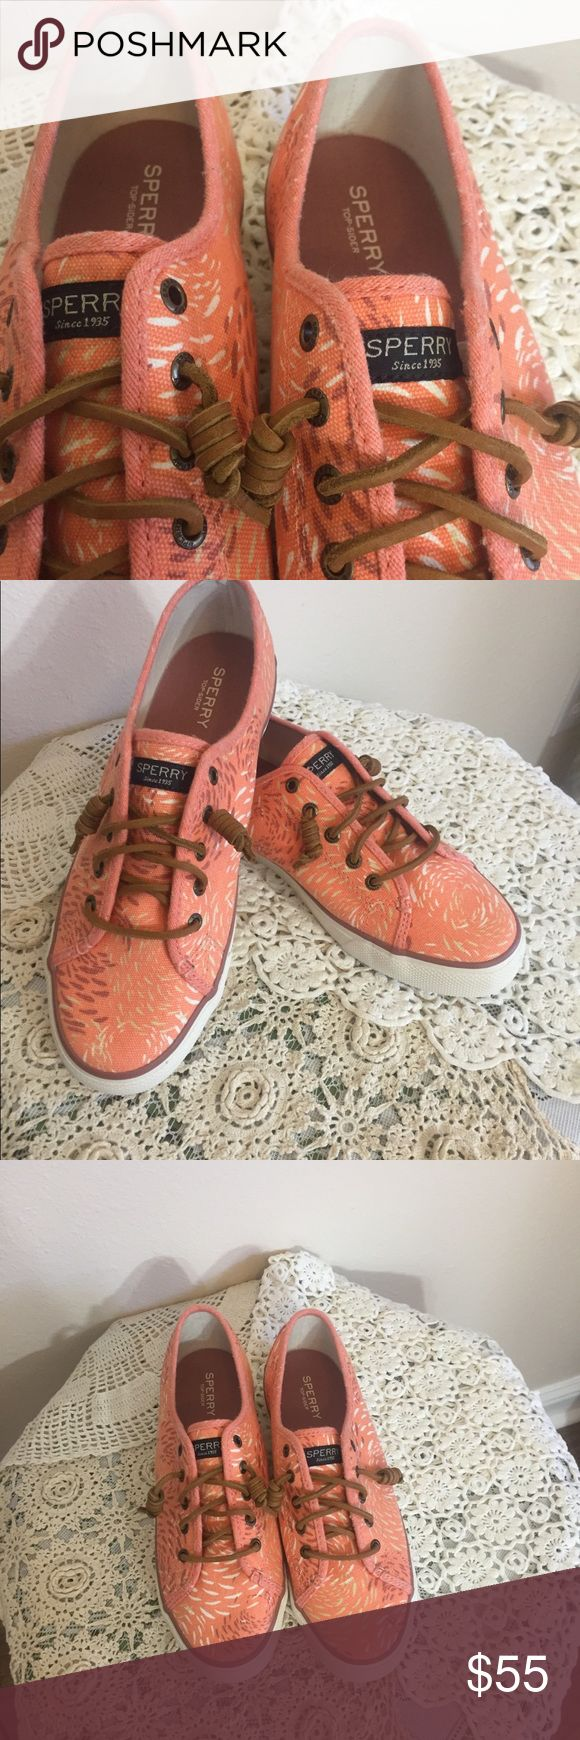 NWOT Peach Floral Canvas Sperry Top-Siders These cute flats are perfect for slipping on and off before running out the door since you don't even have to tie them! They have never been worn outside of the store. New without tags. The shoe laces are leather and hold well. Sperry Top-Sider Shoes Flats & Loafers